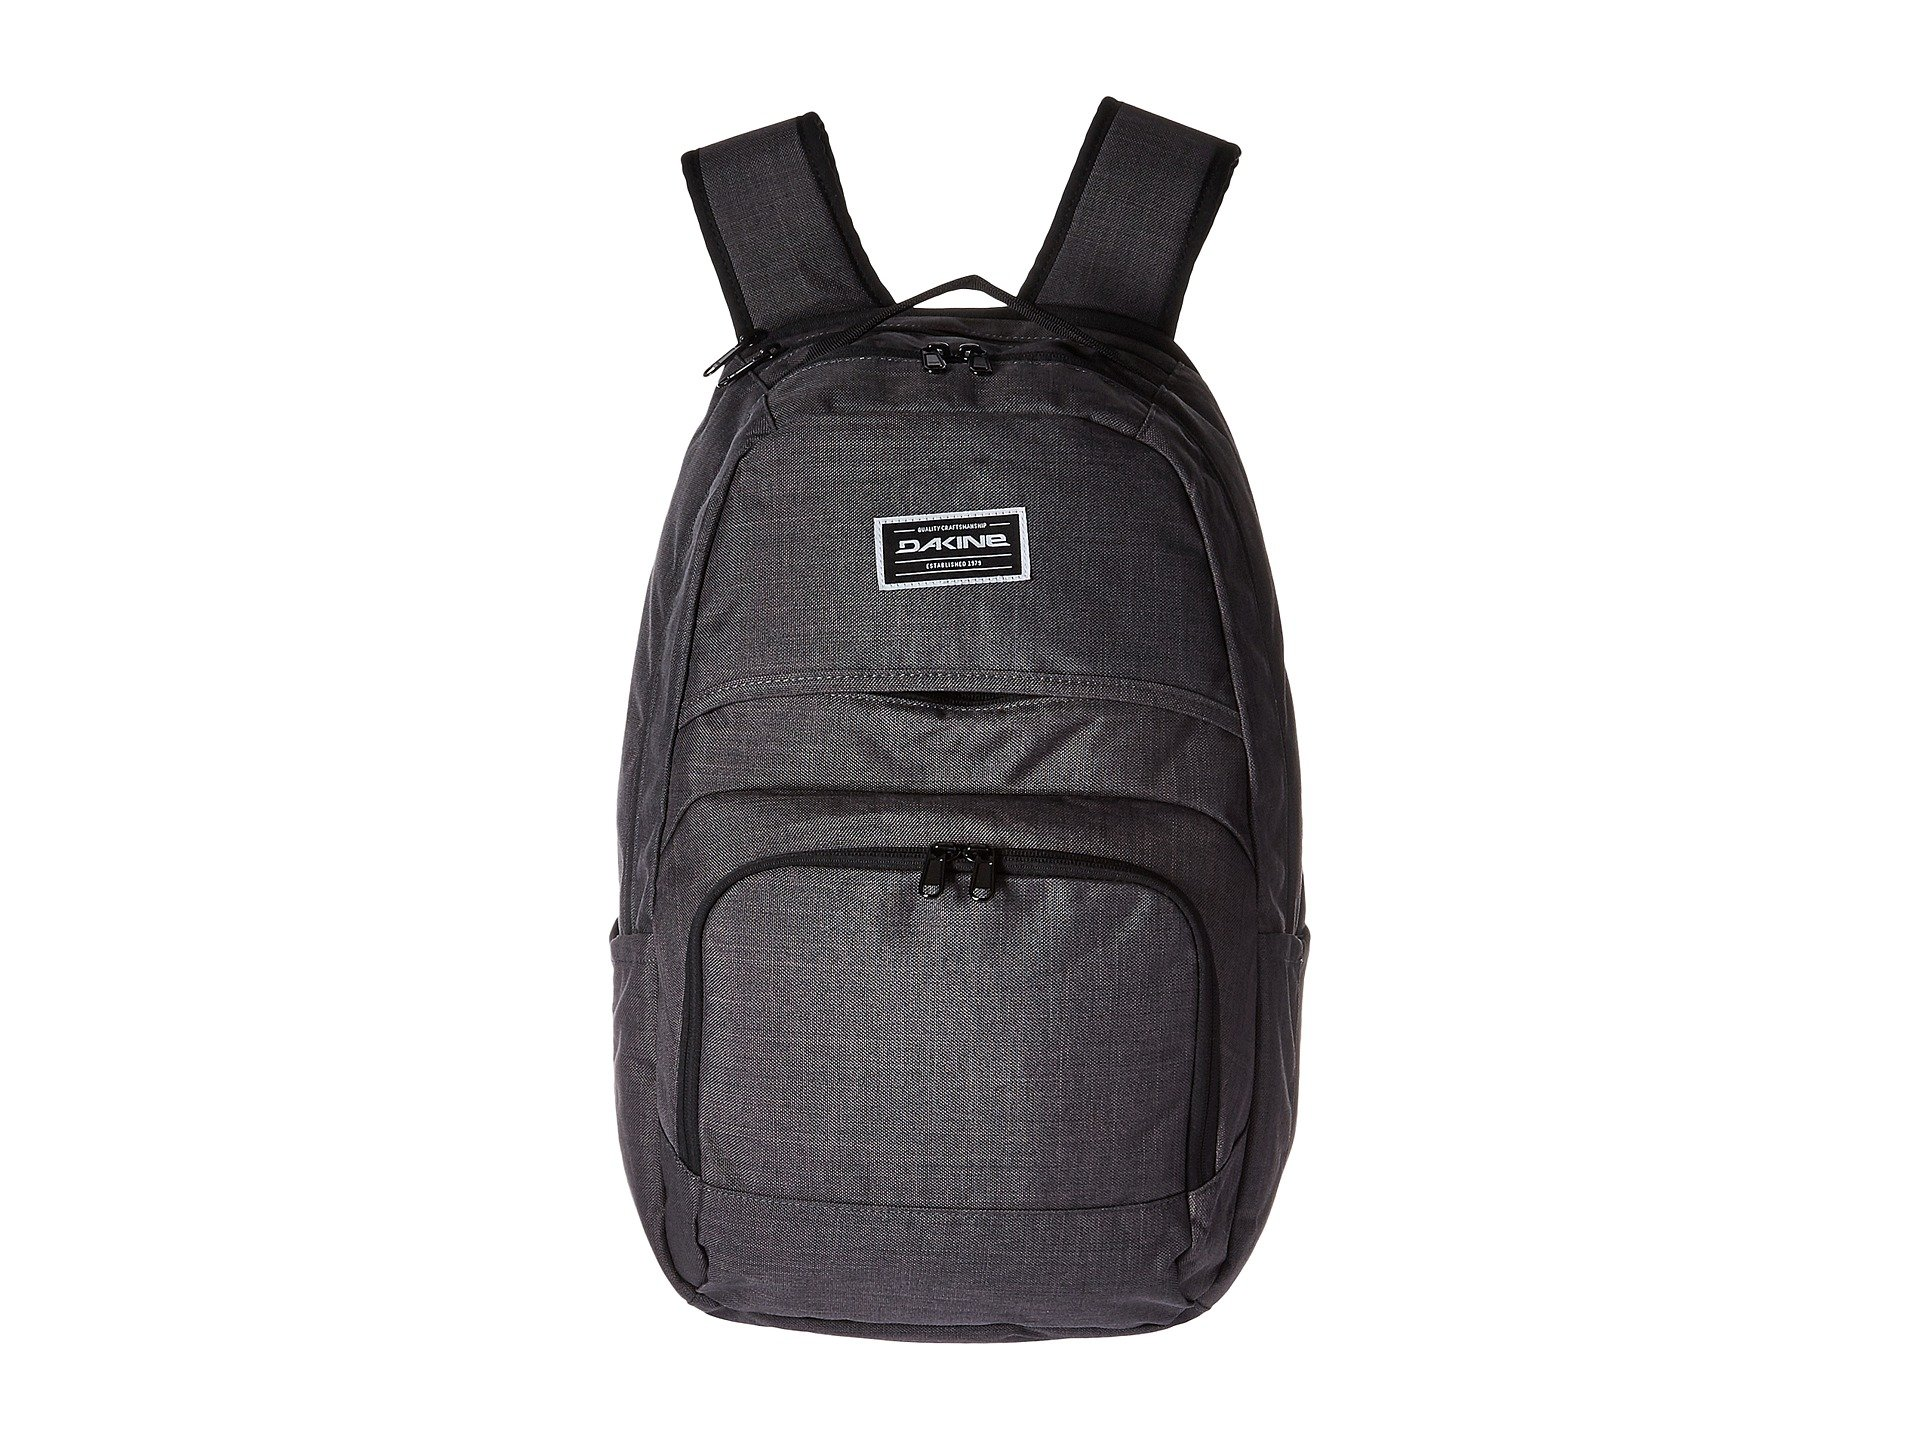 33l Dakine Campus Dlx 1 Backpack Carbon ggt7awUqB